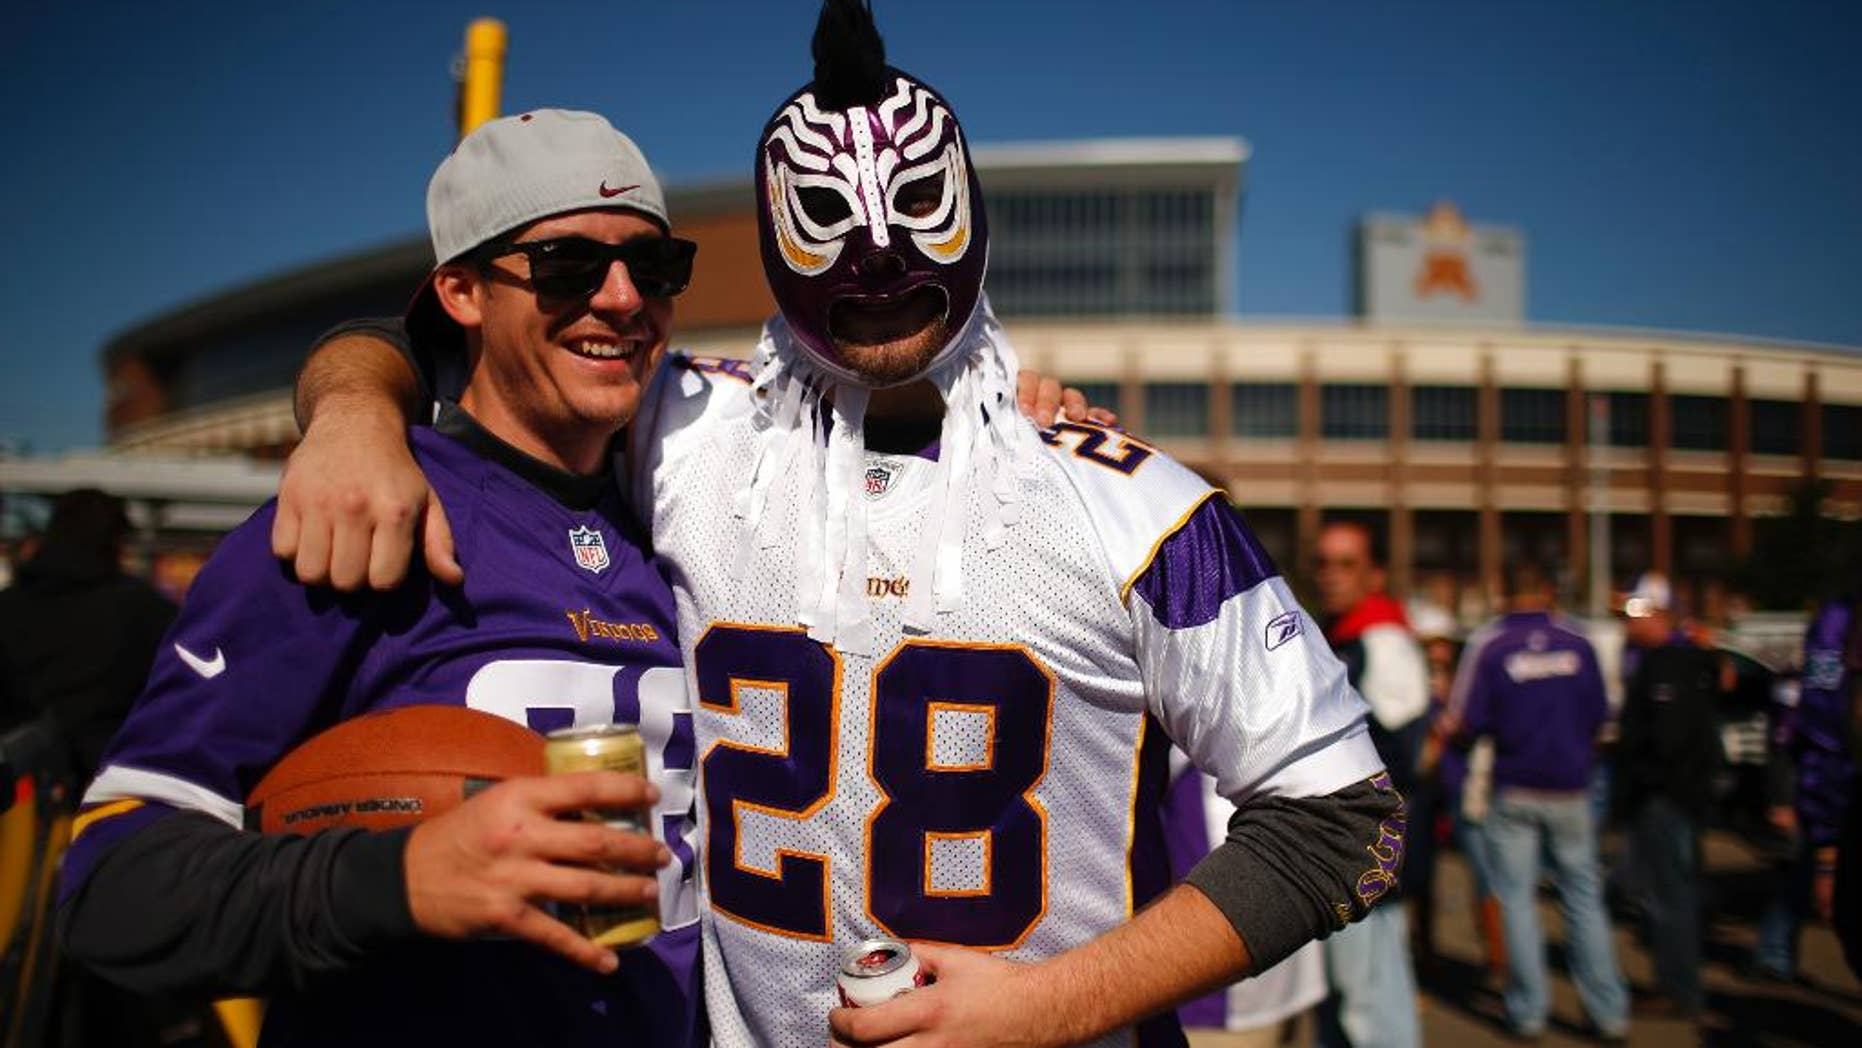 New At Minnesota Vikings game, some fan views on Adrian Peterson abuse  supplier